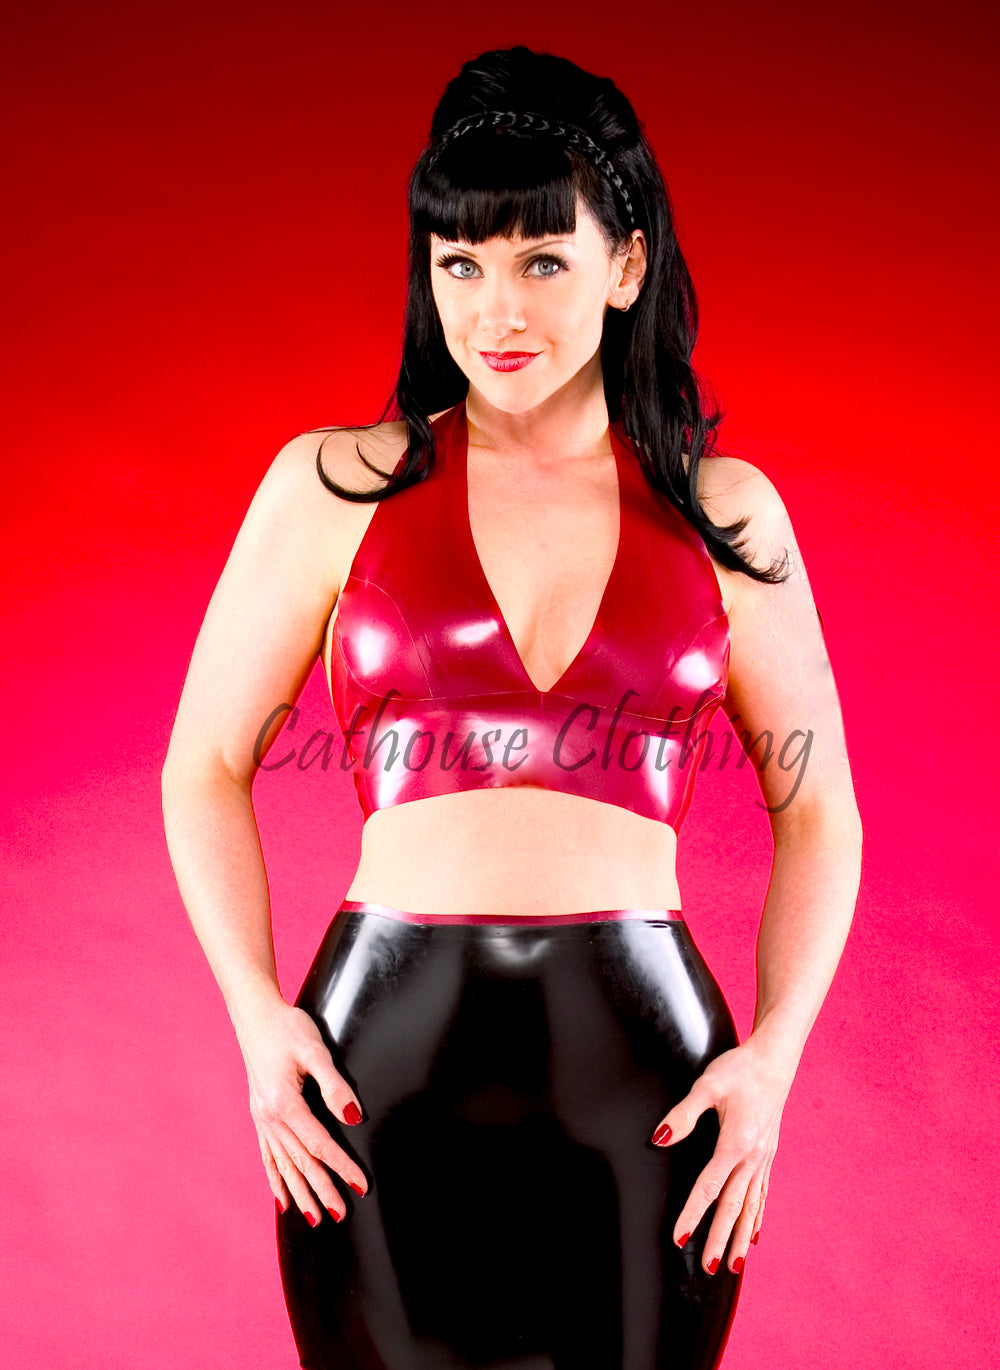 Latex halterneck bra top